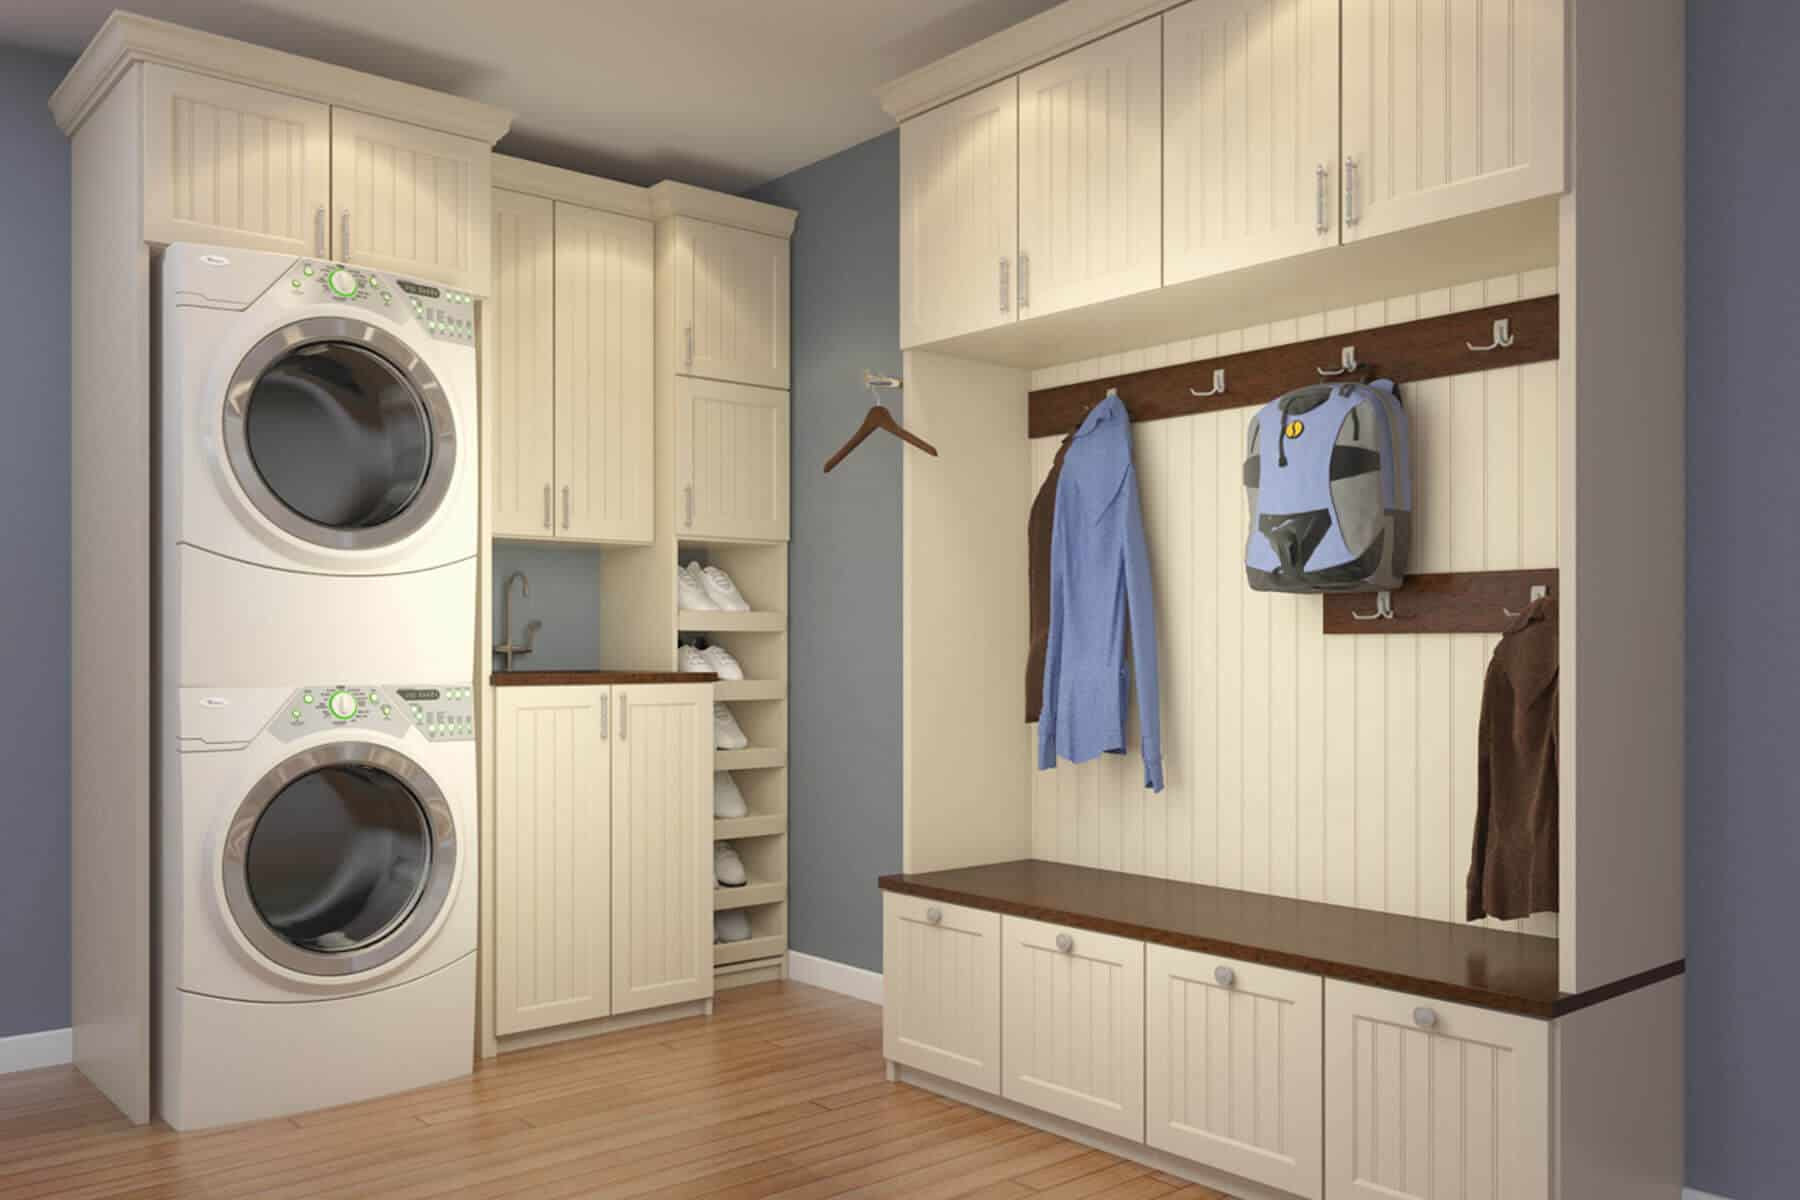 Catchy America What Is A Mud Room Laundry Mudroom 2018 What Is A Mudroom Example Laundry Room Combo Mudroom Ideas houzz 01 What Is A Mud Room